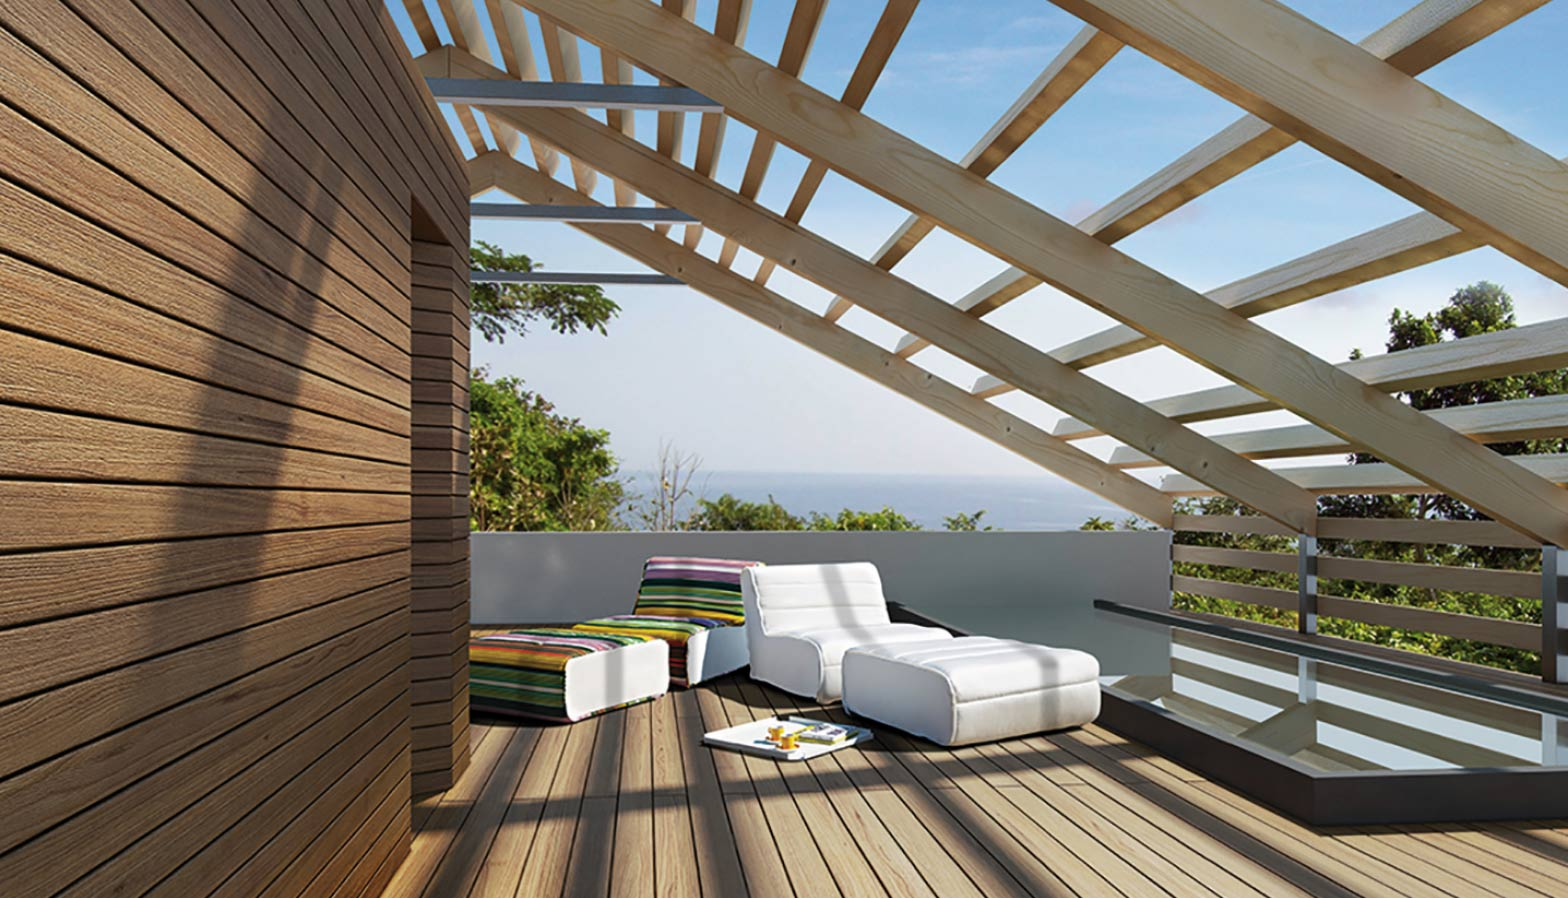 What Do You Need To Build A Timber Deck?